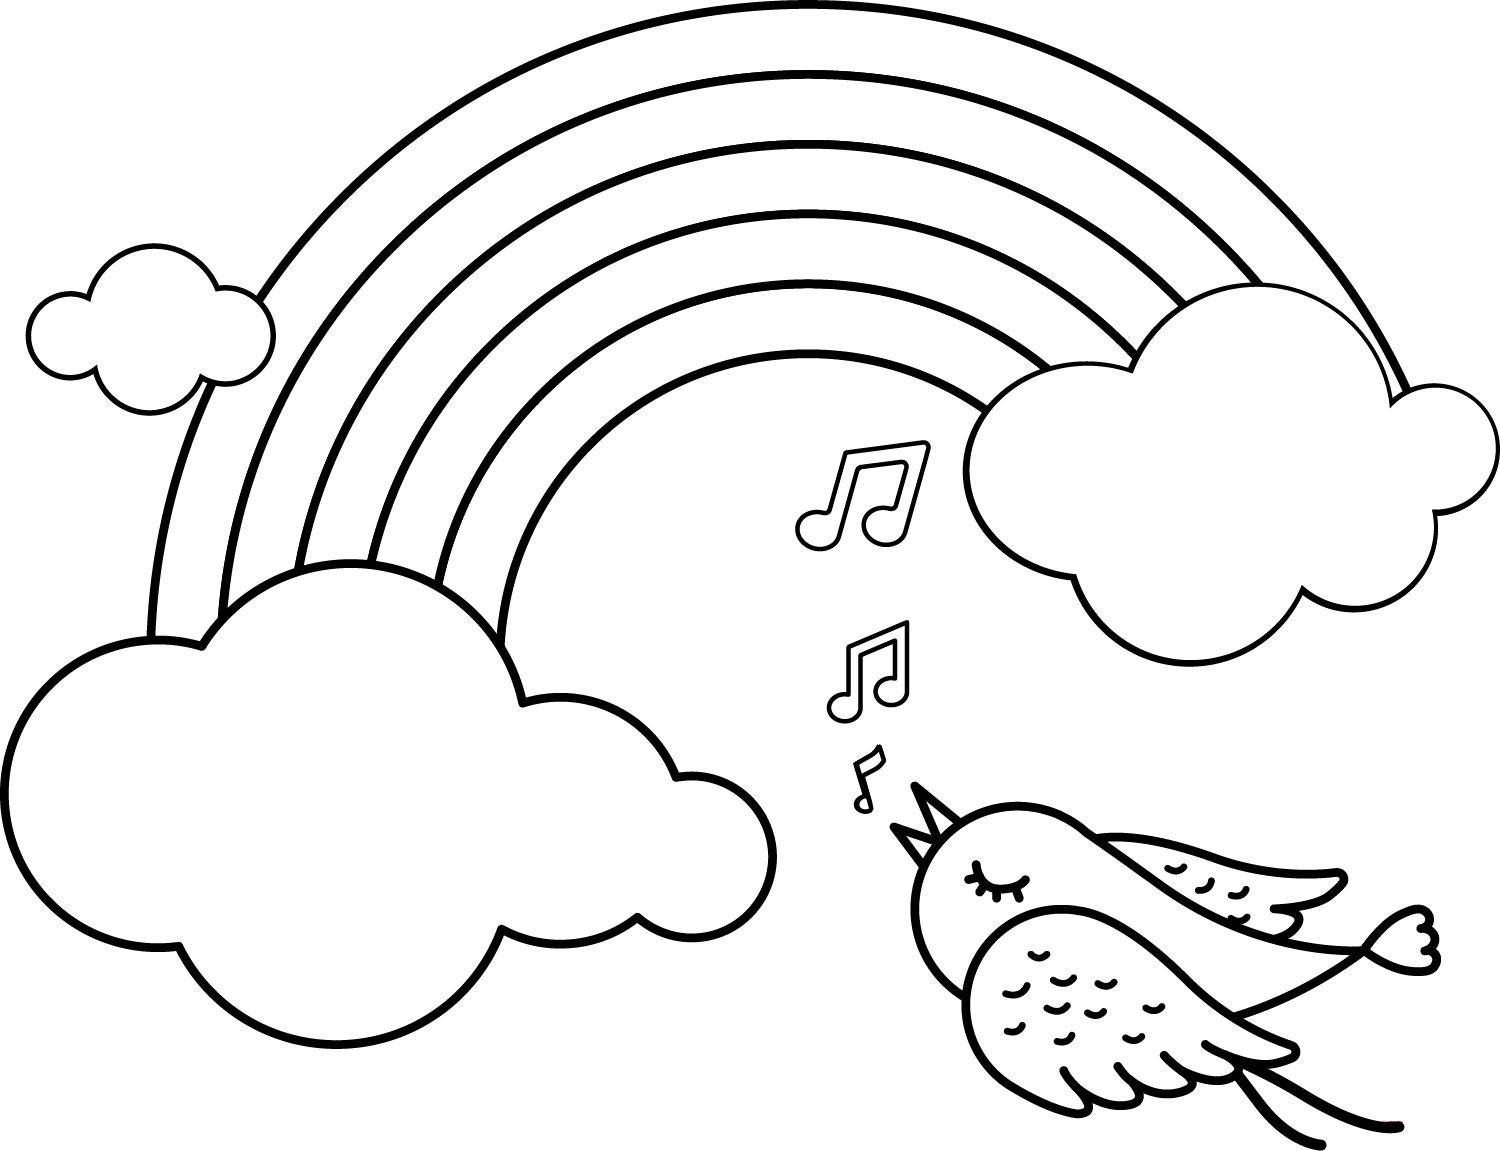 RAINBOW-AND-BIRD-SINGING-MUSIC-Clipart Coloring Pages for Kids Adults Art Activities Line Art